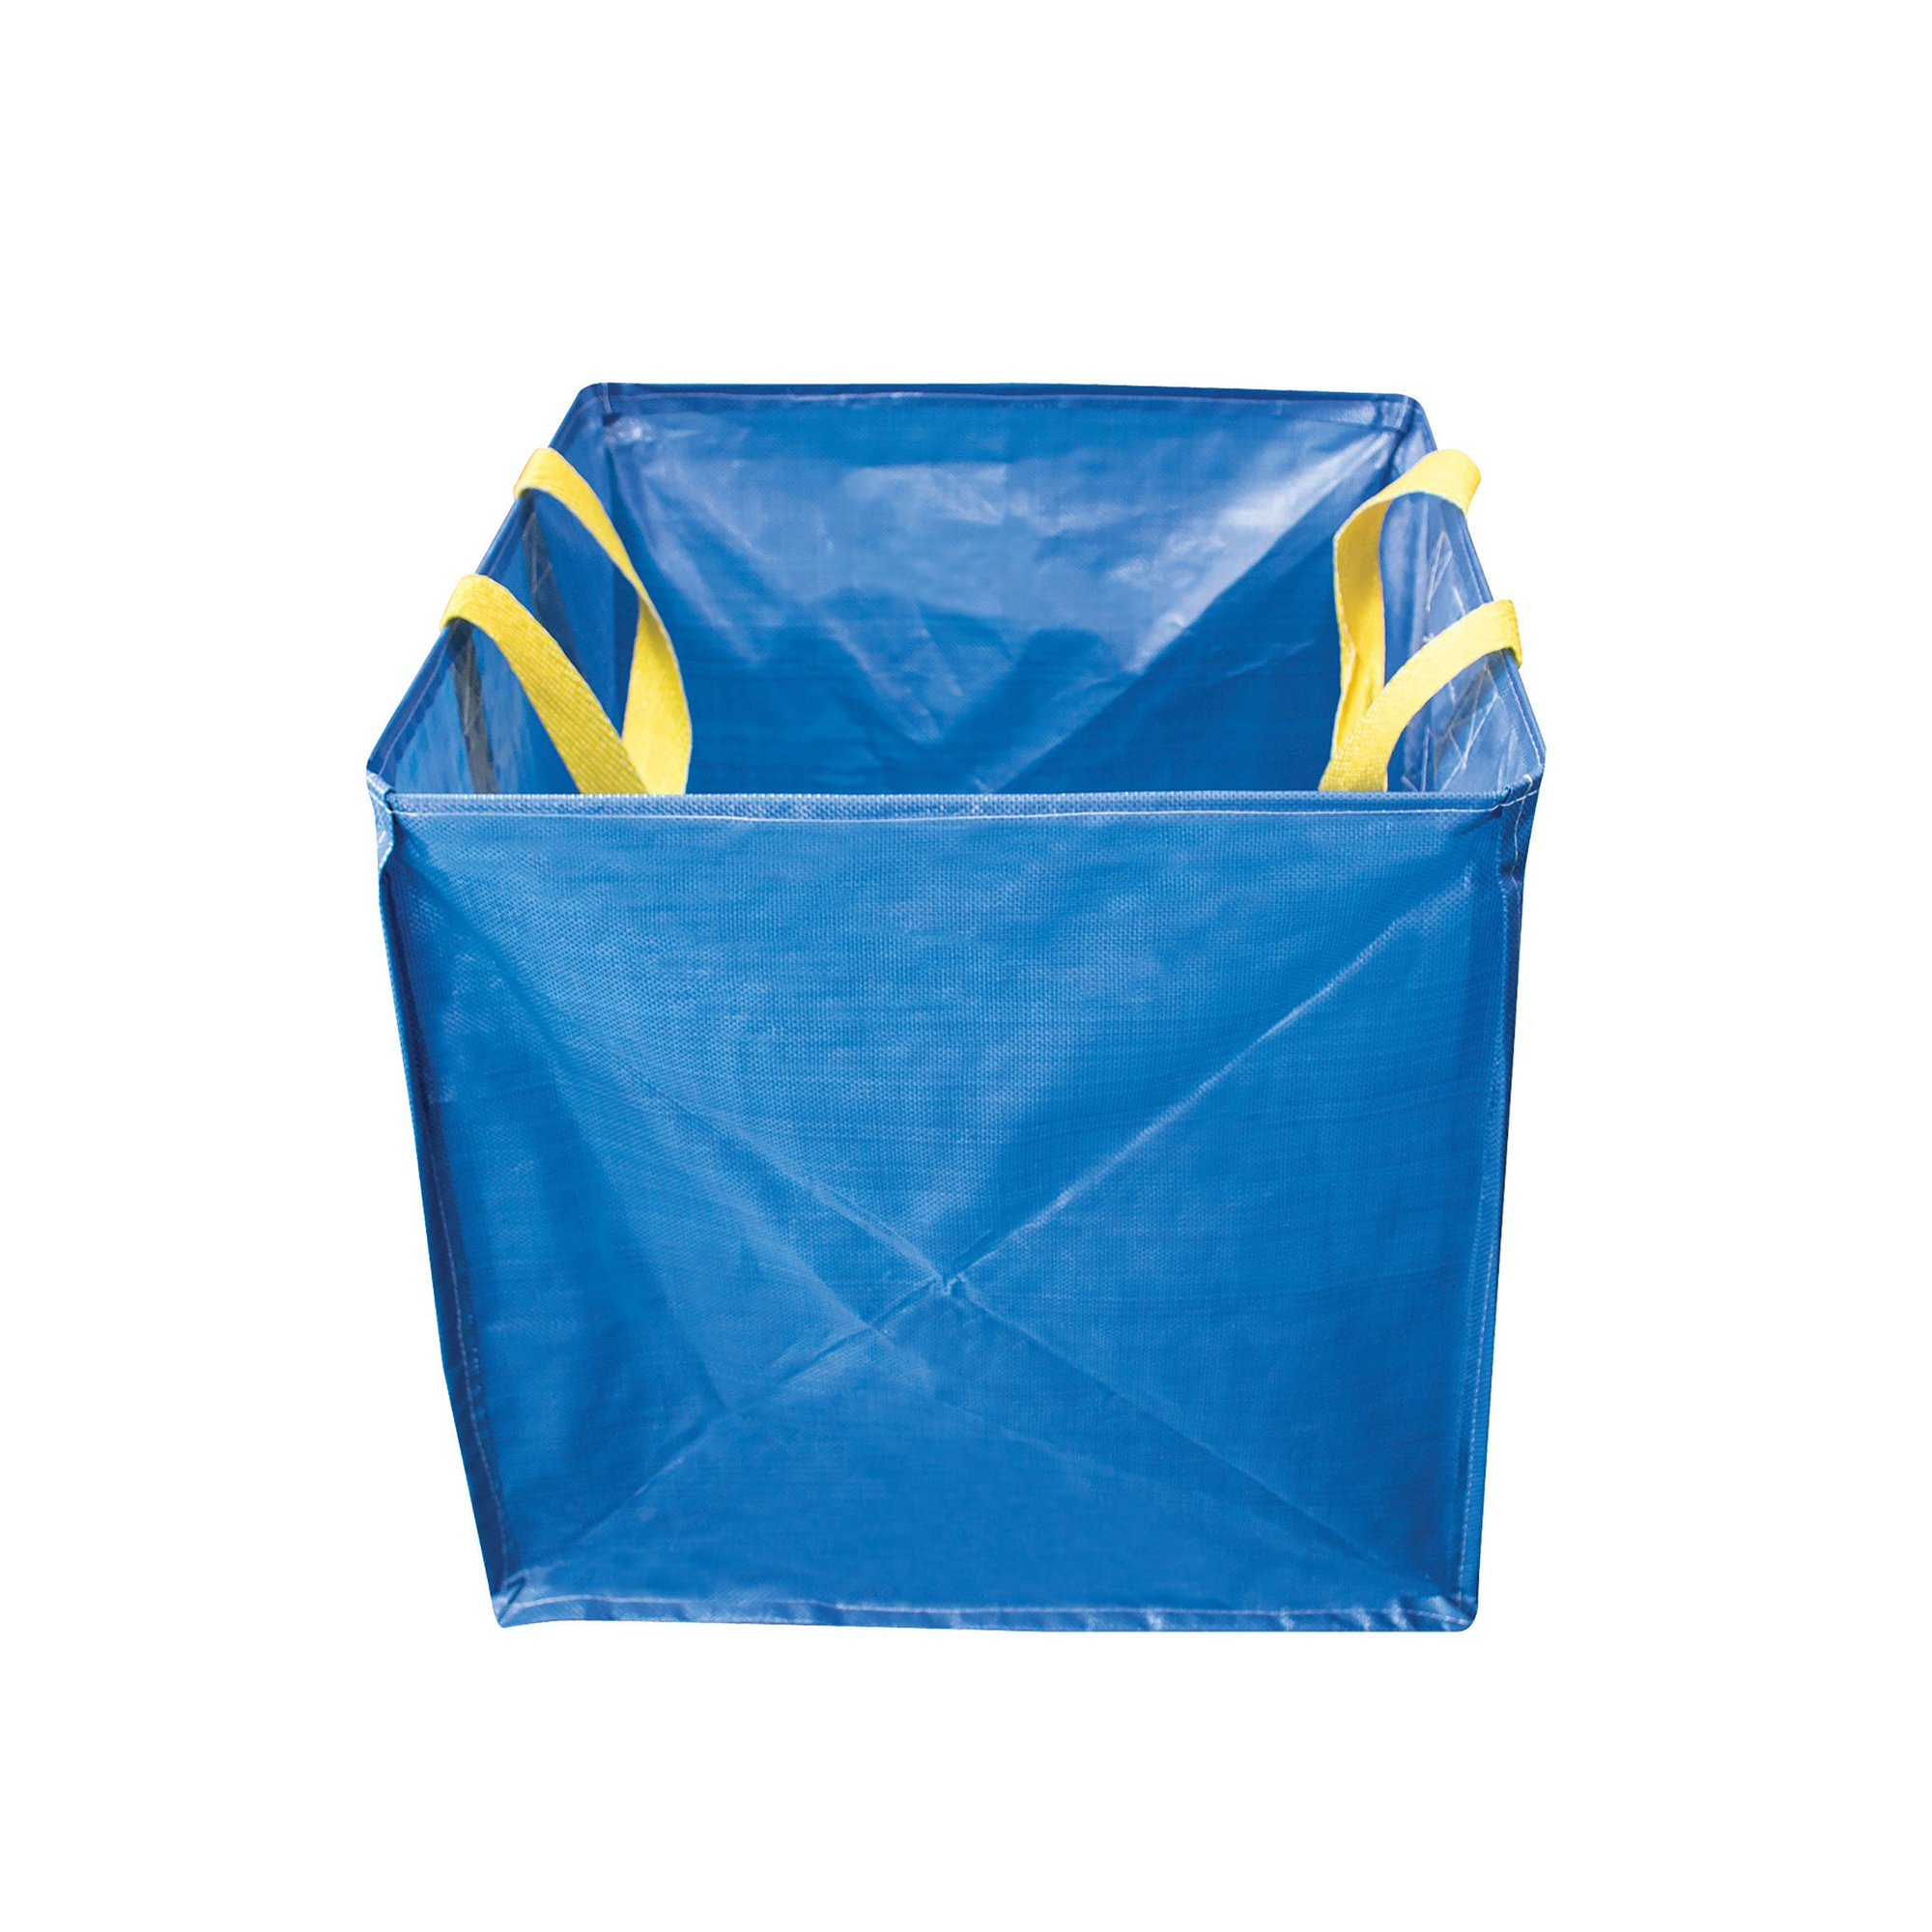 Image of 300 Litre Self-Standing Waste Bag